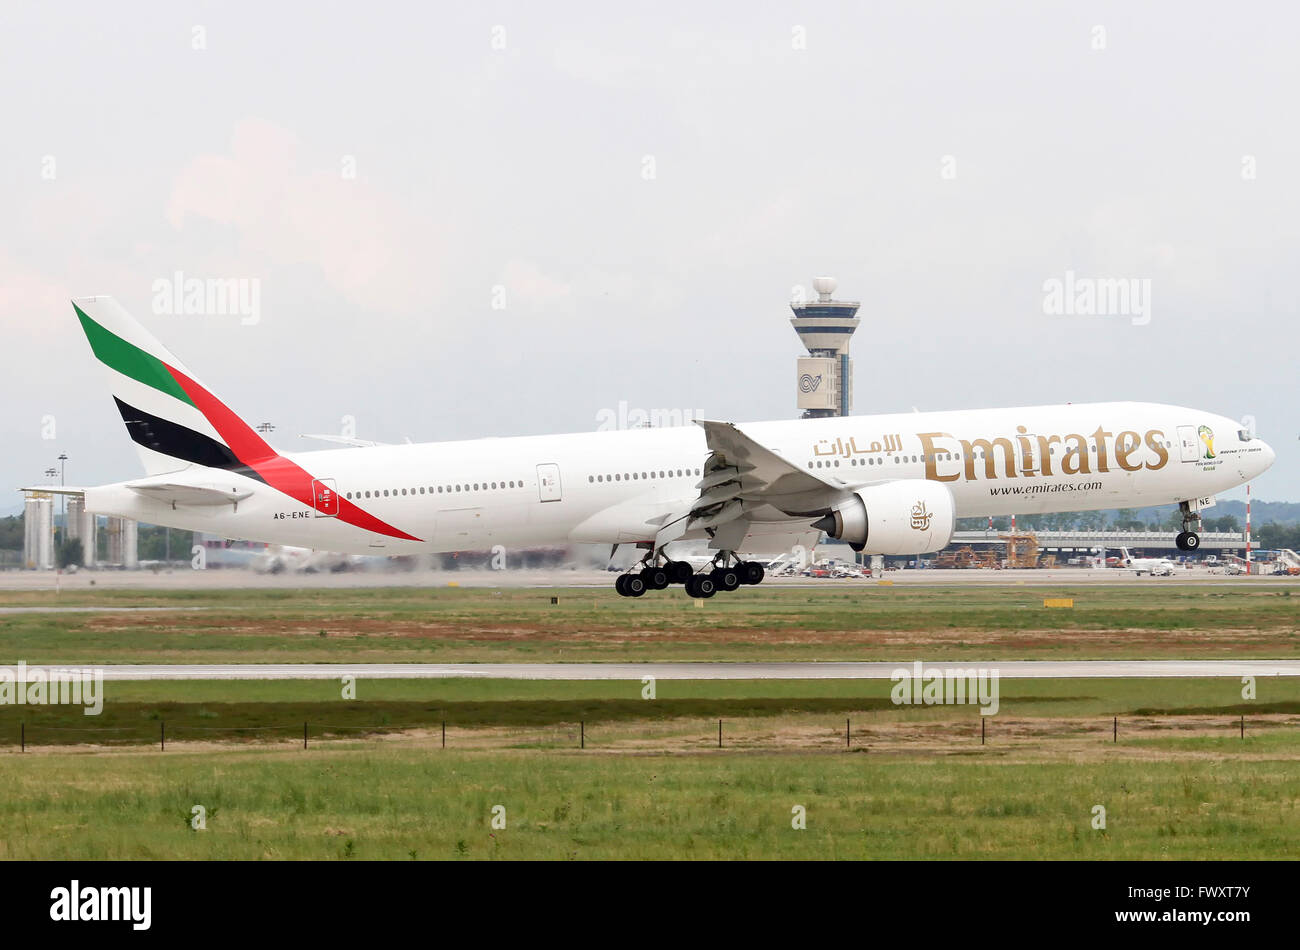 Emirates Airlines, Boeing 777-300 at Linate airport, Milan, Italy - Stock Image